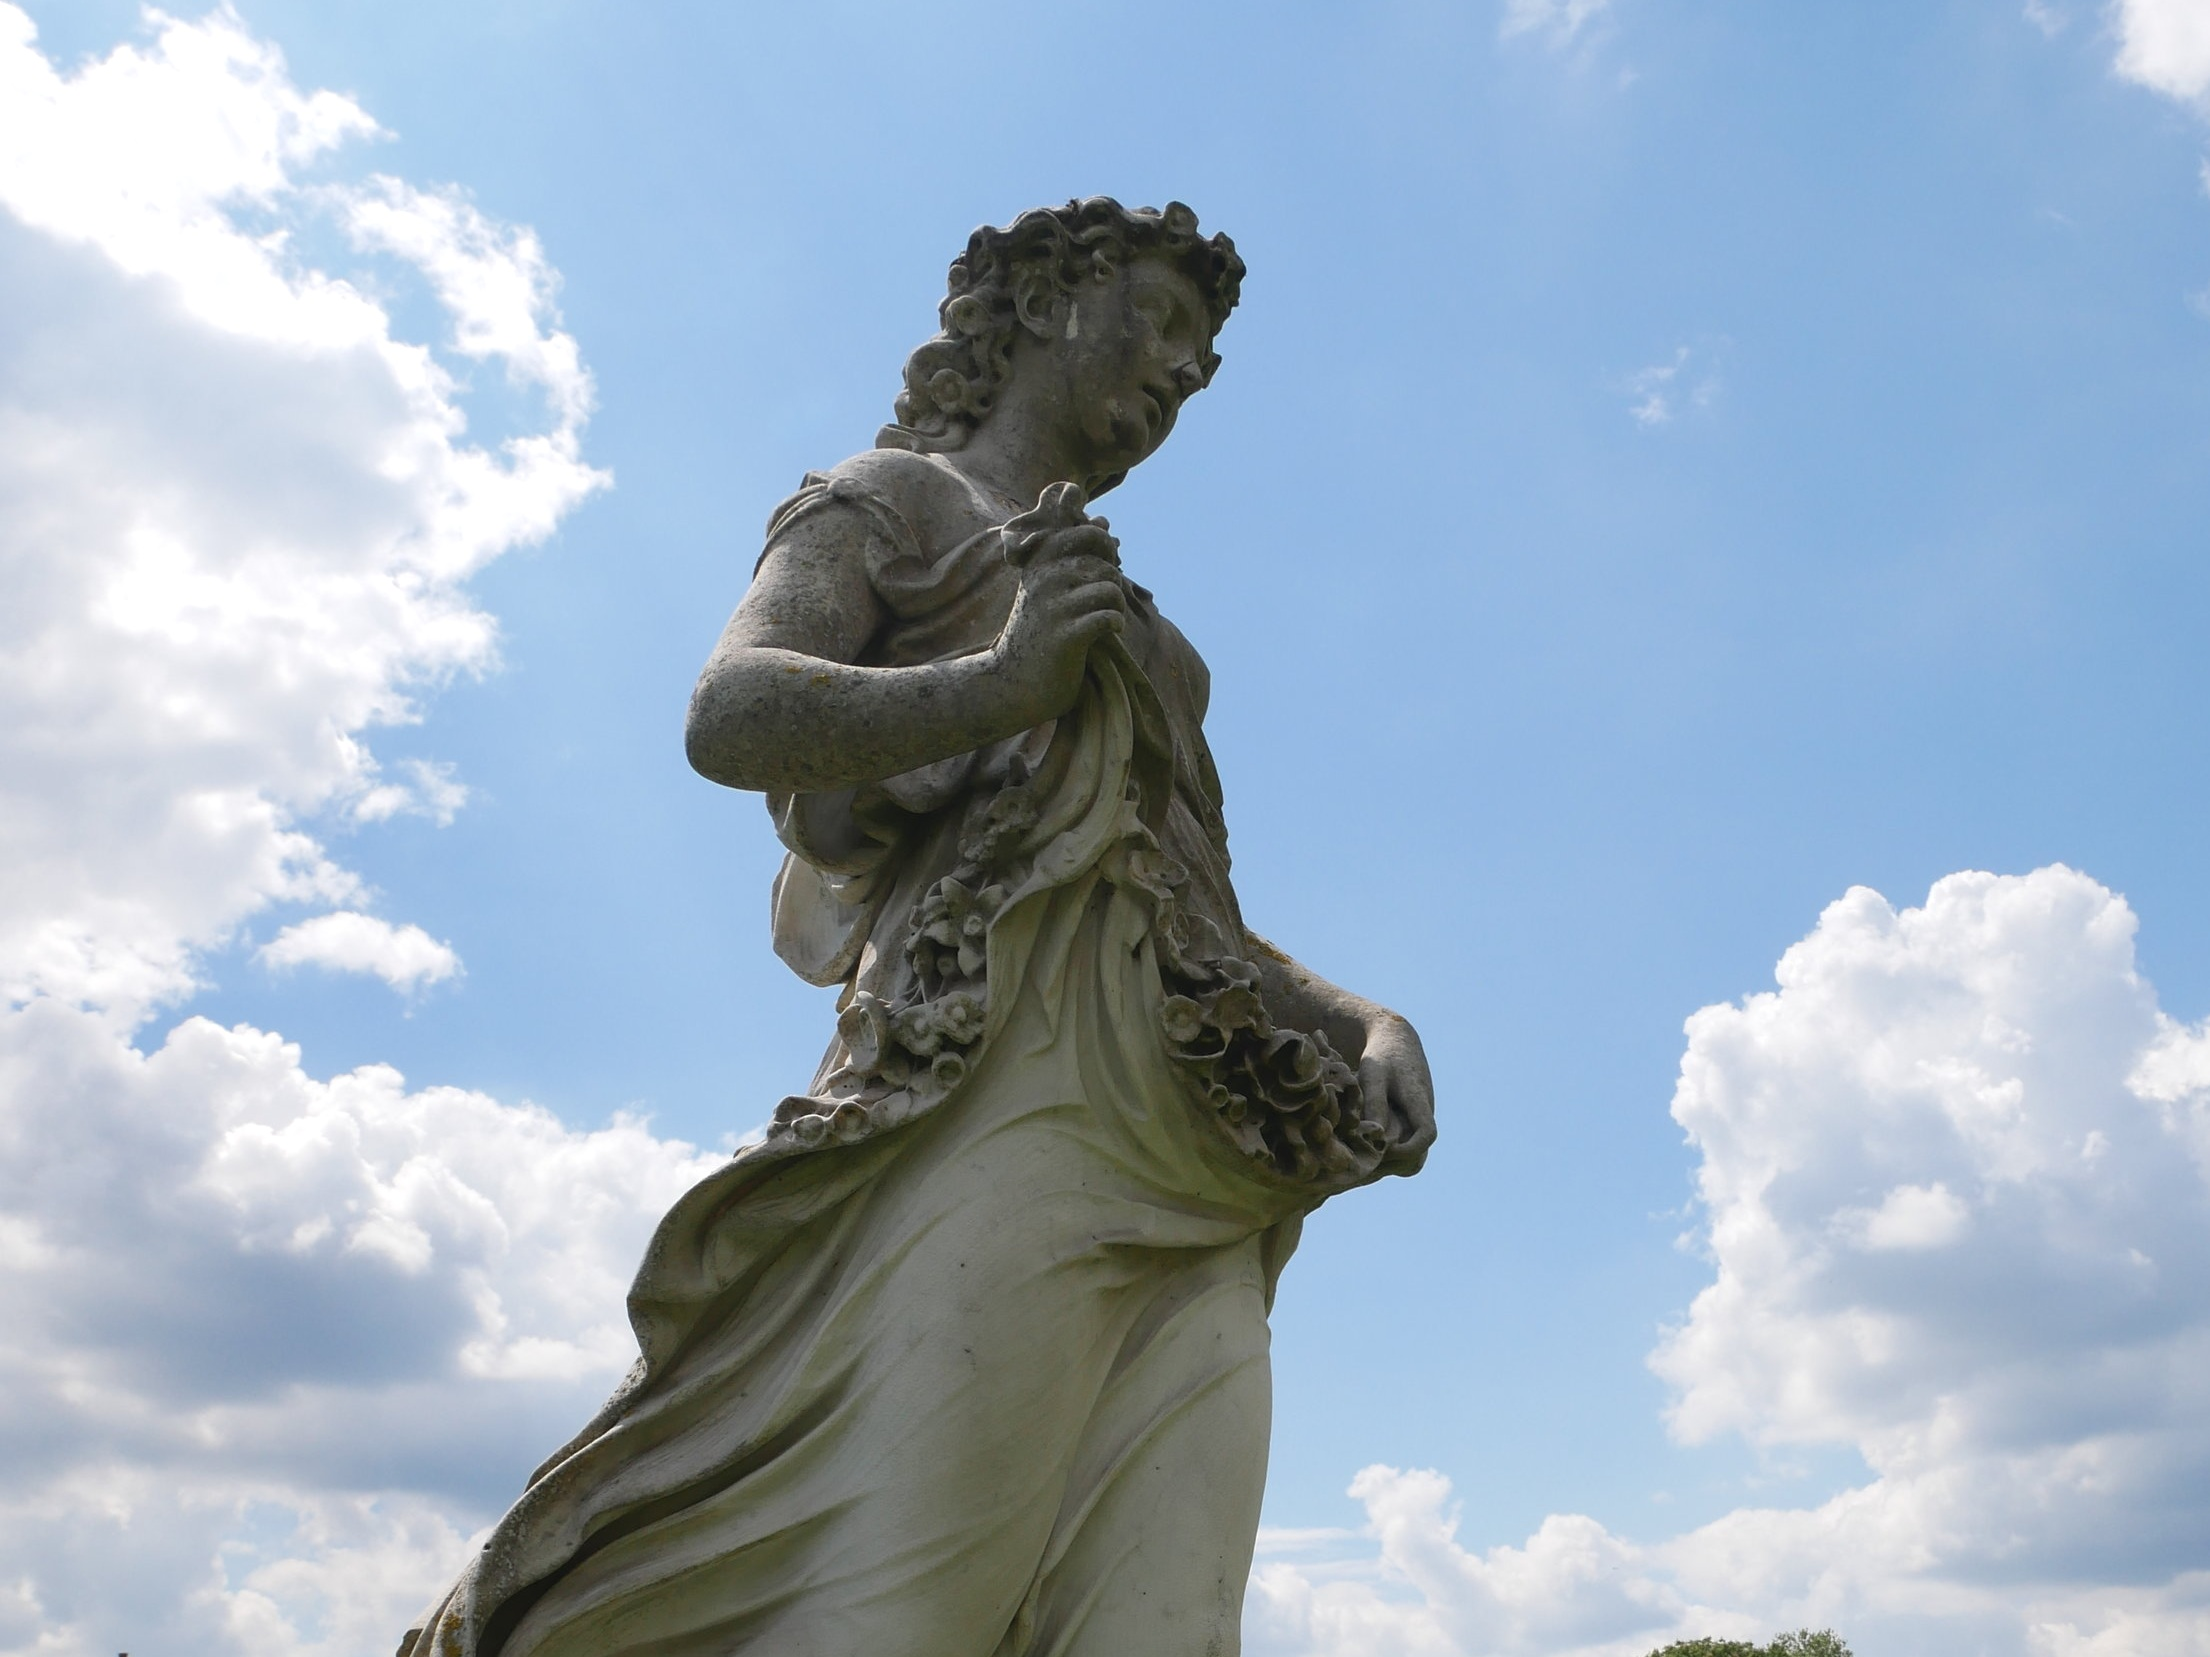 Flora - The goddess of the flowering of plants and the season of spring. Her festival, called the Floralia established in 238 BC. A representation of Flora's head, distinguished only by a floral crown, appeared on coins and her name survives in the botanical term for vegetation of a particular environment.